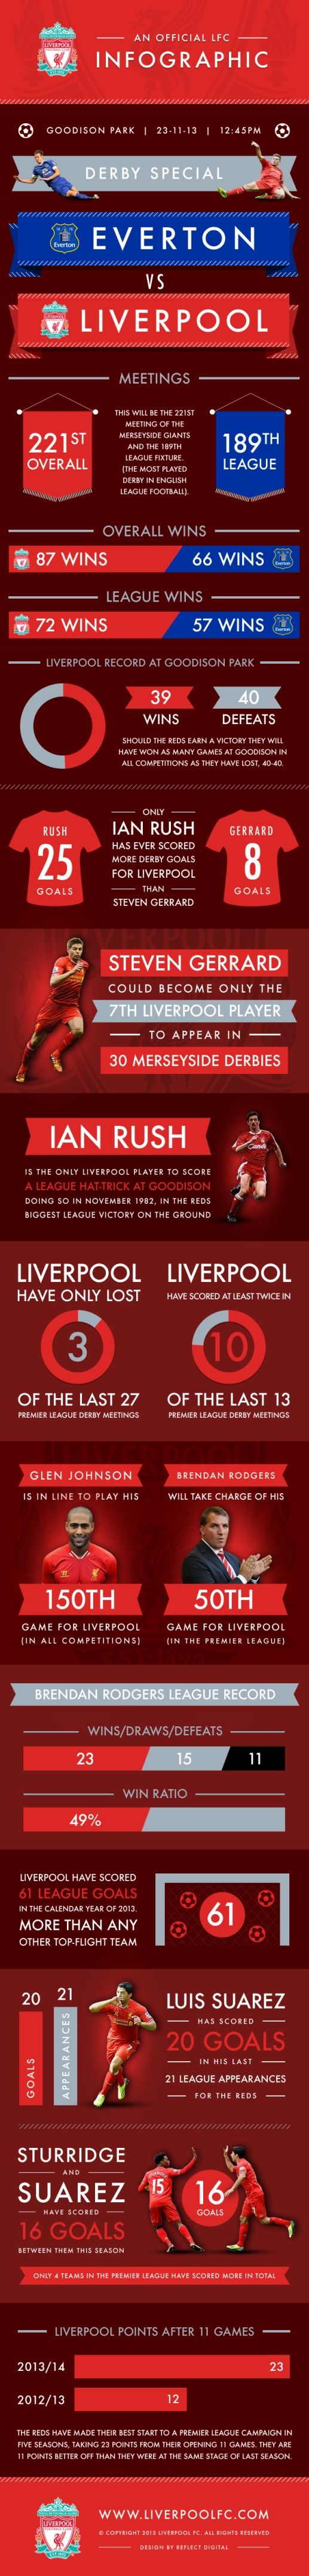 Merseyside derby infographic: Everton v Liverpool - Liverpool FC